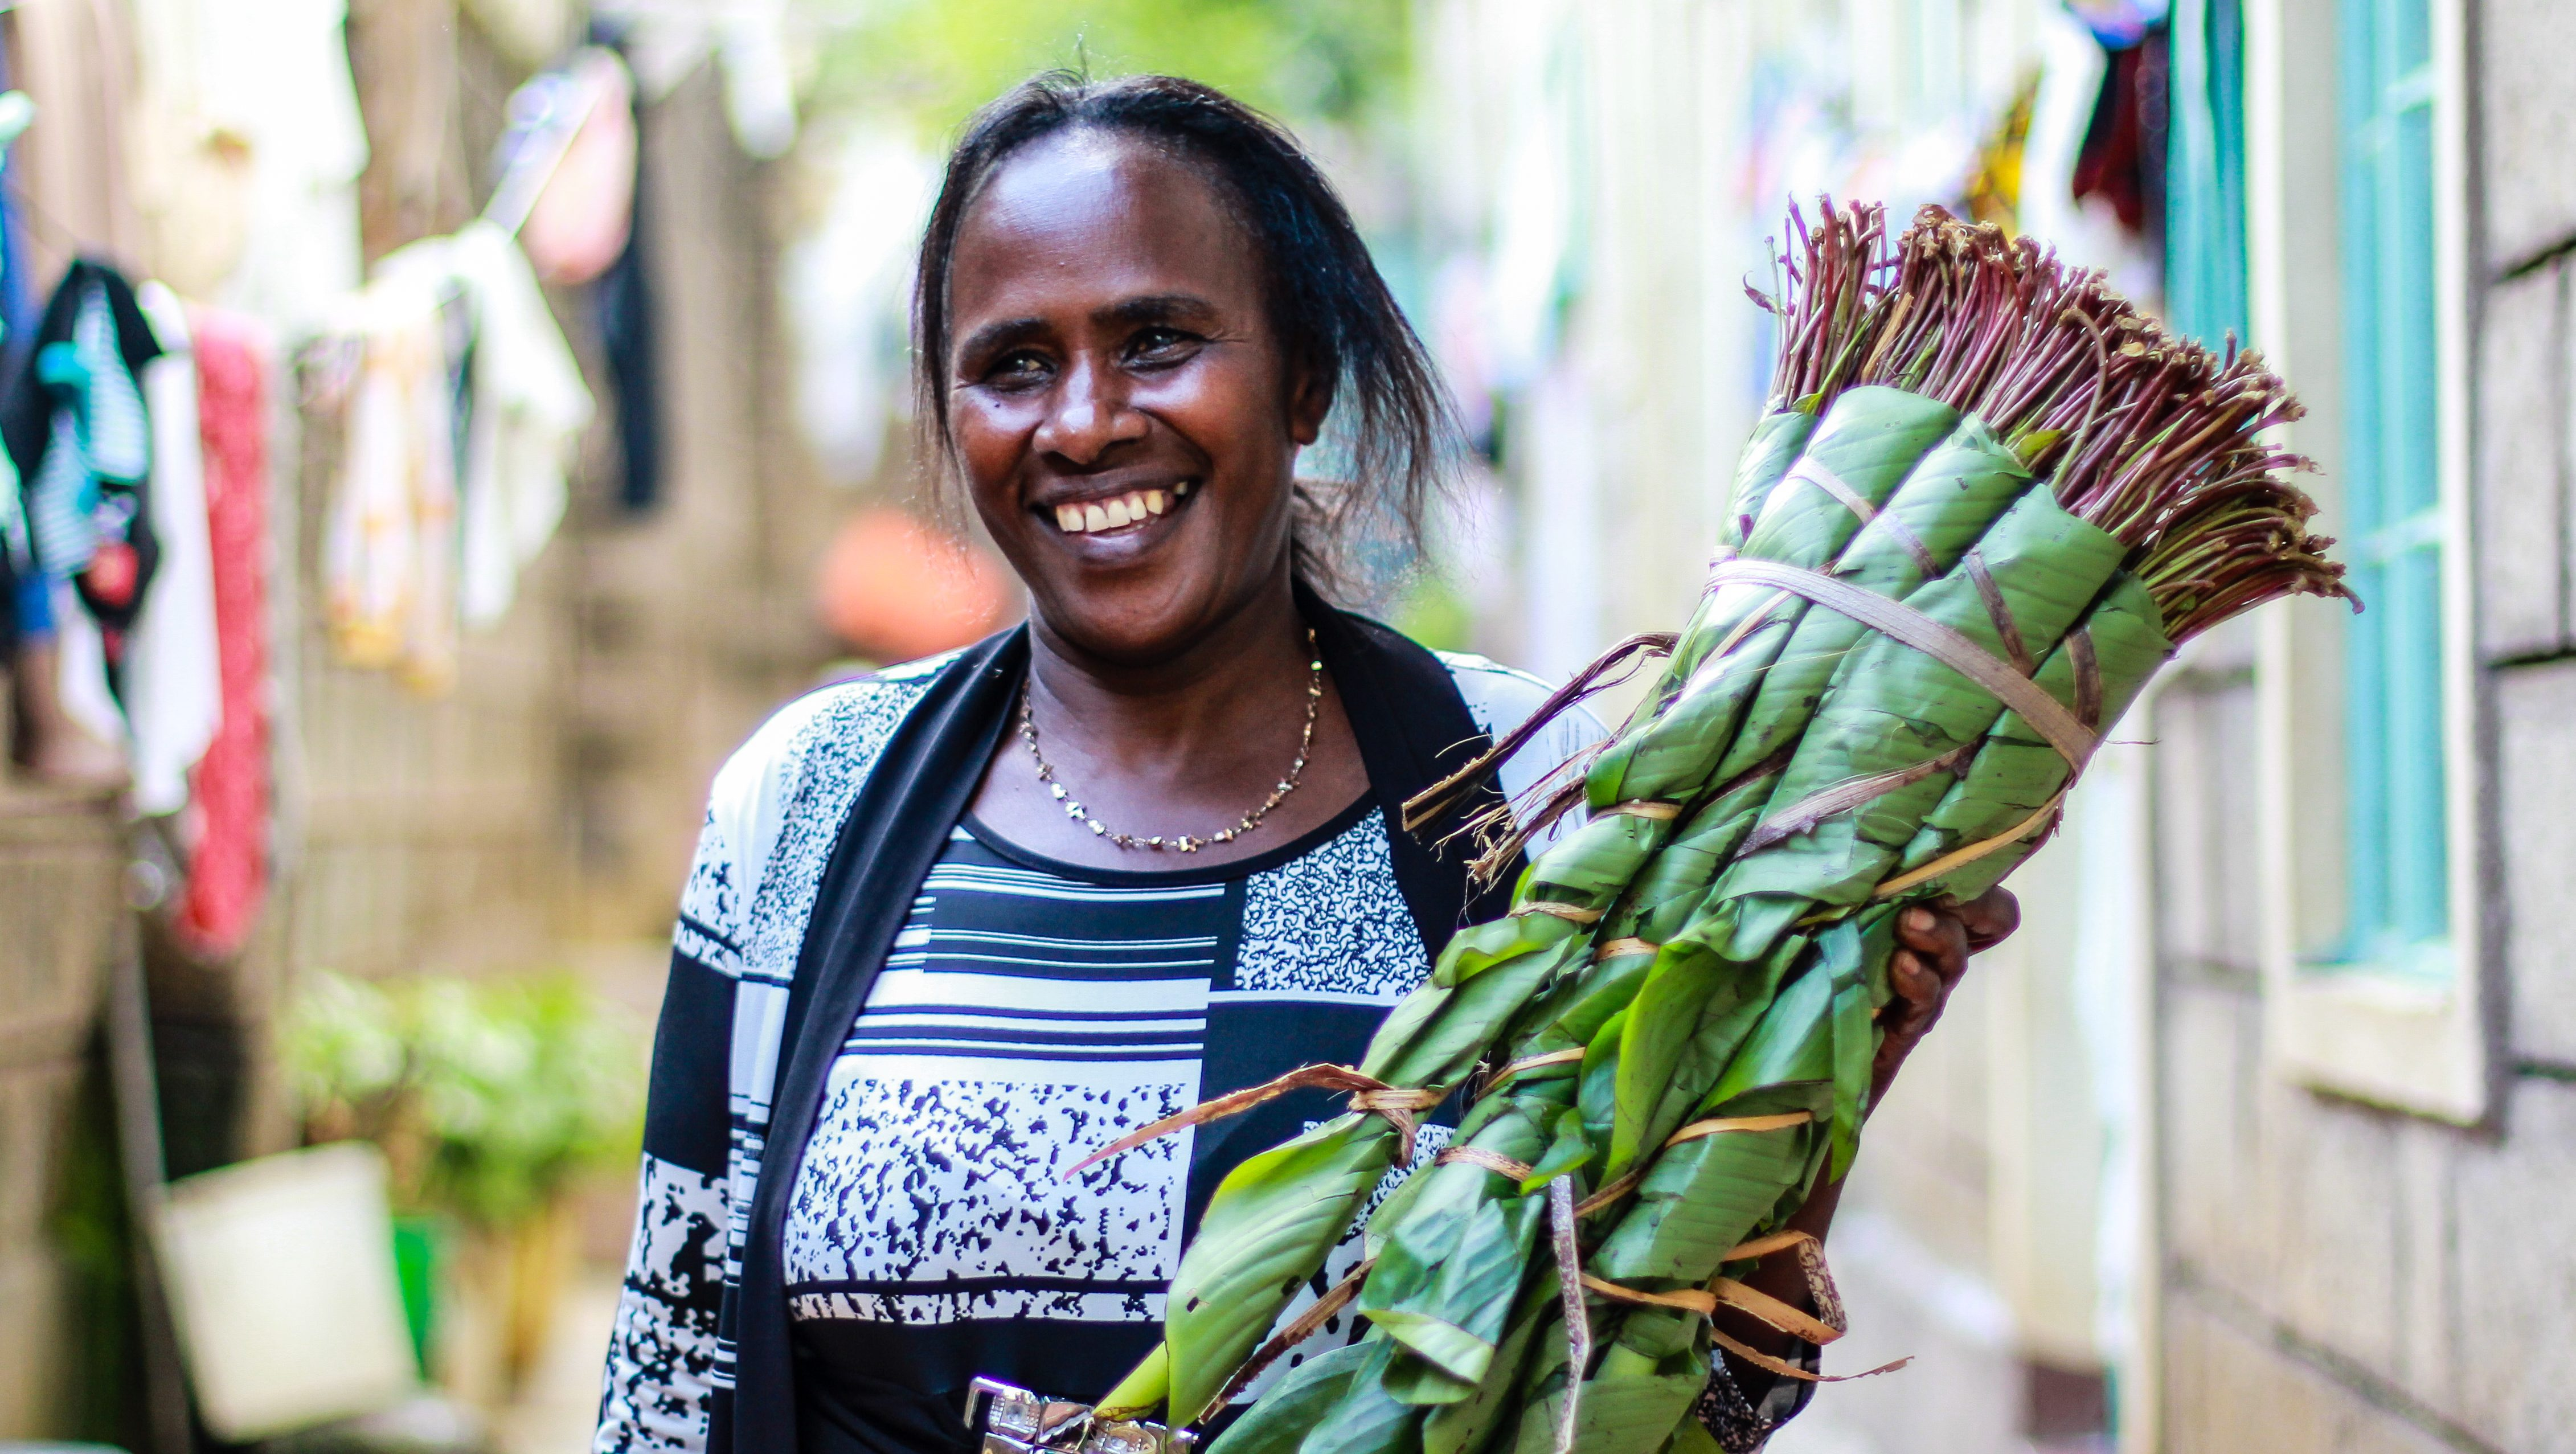 Khat, East Africa's stimulant leaf, is a global business because of